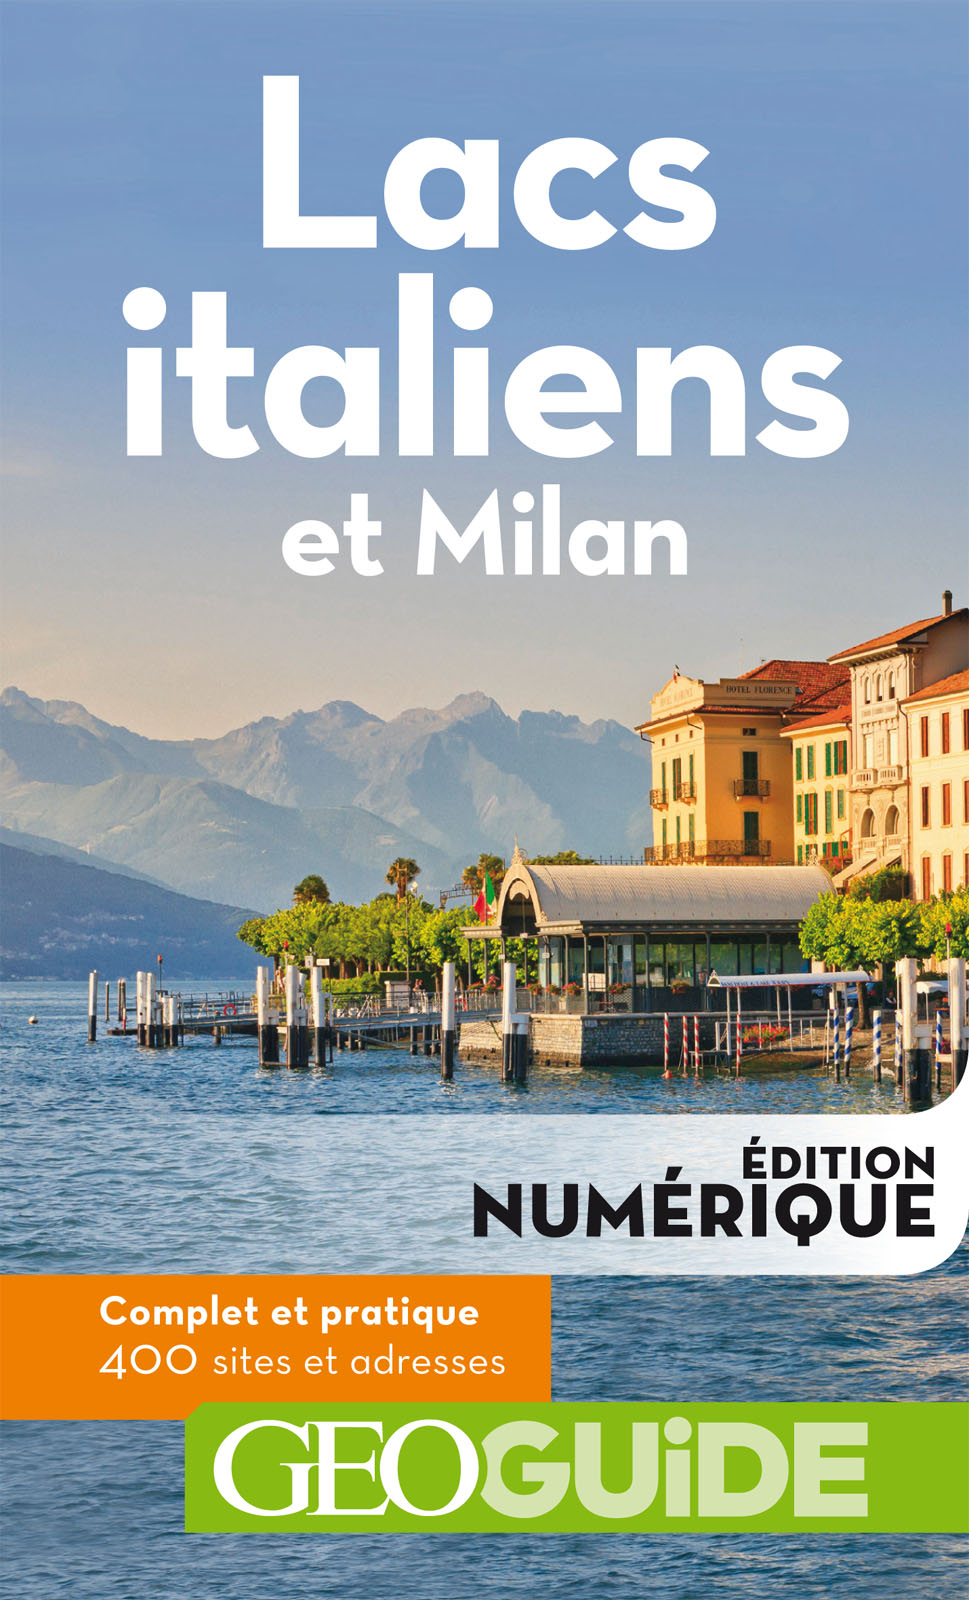 GEOguide Lacs italiens et Milan | Collectif Gallimard Loisirs,